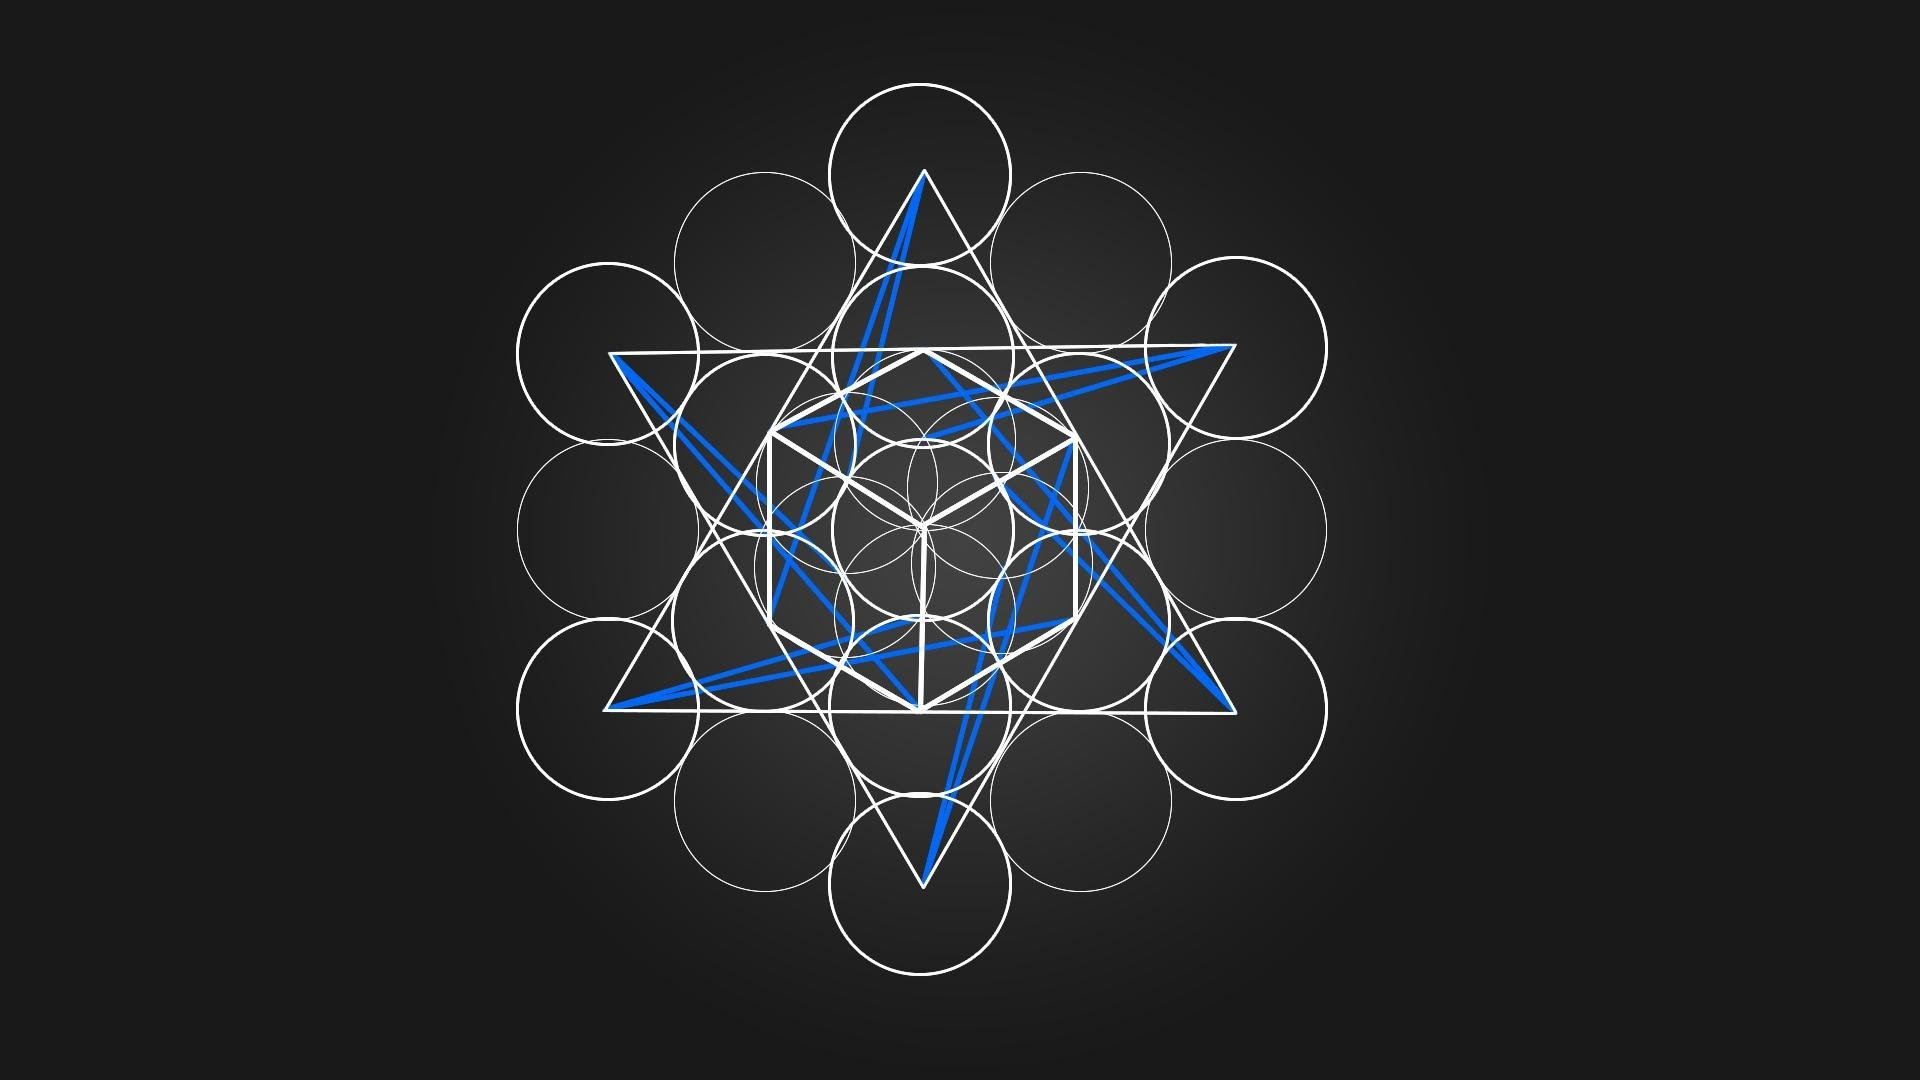 1920x1080 Metatron's Cube, The White Light and Prism, Let There be Photons, YOU ARE  THE LIGHT!